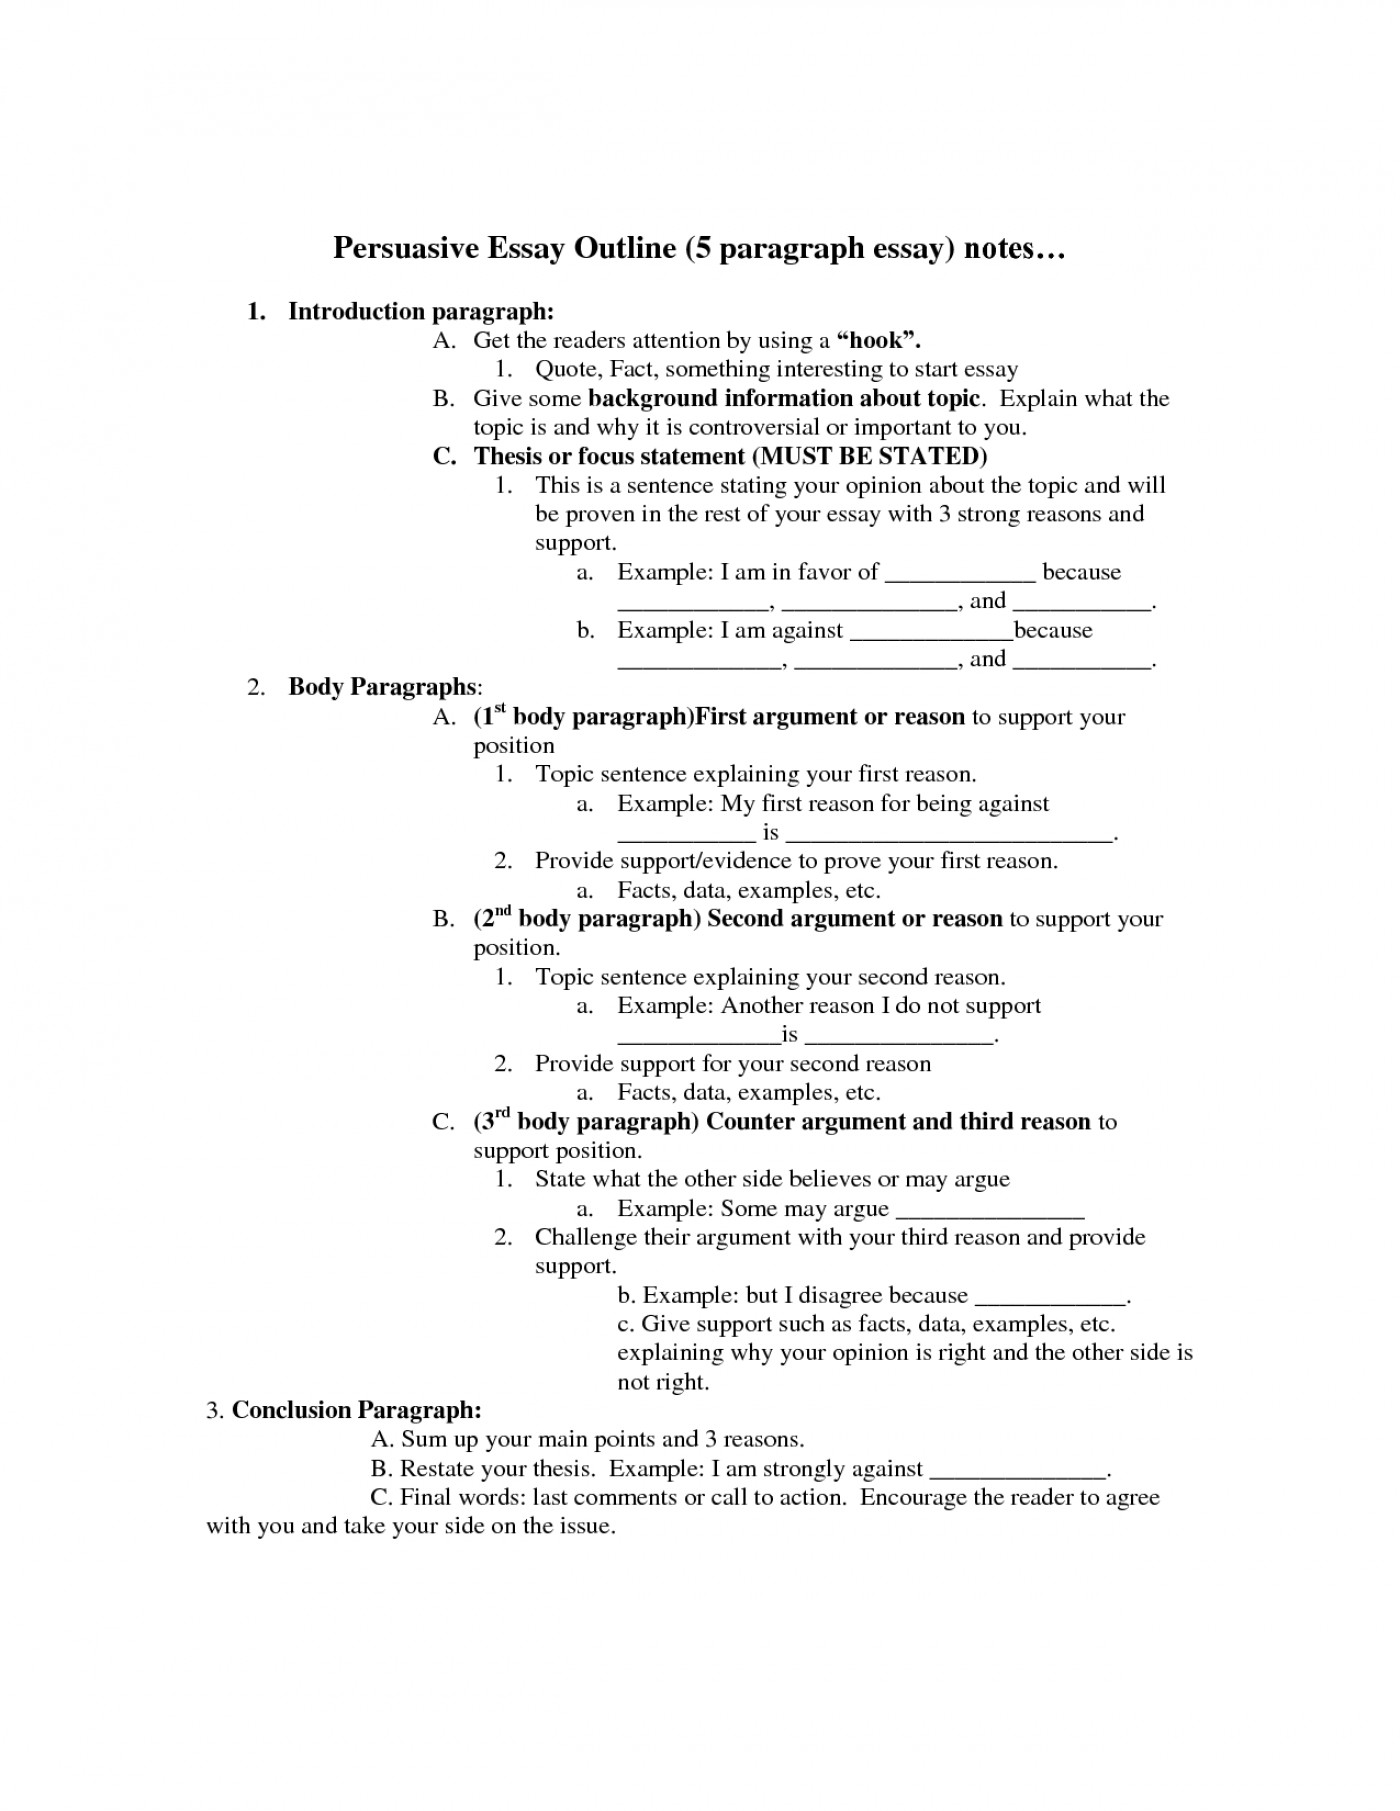 006 Persuasive Essay Outline Unbelievable Format Middle School Template High Pdf 1400